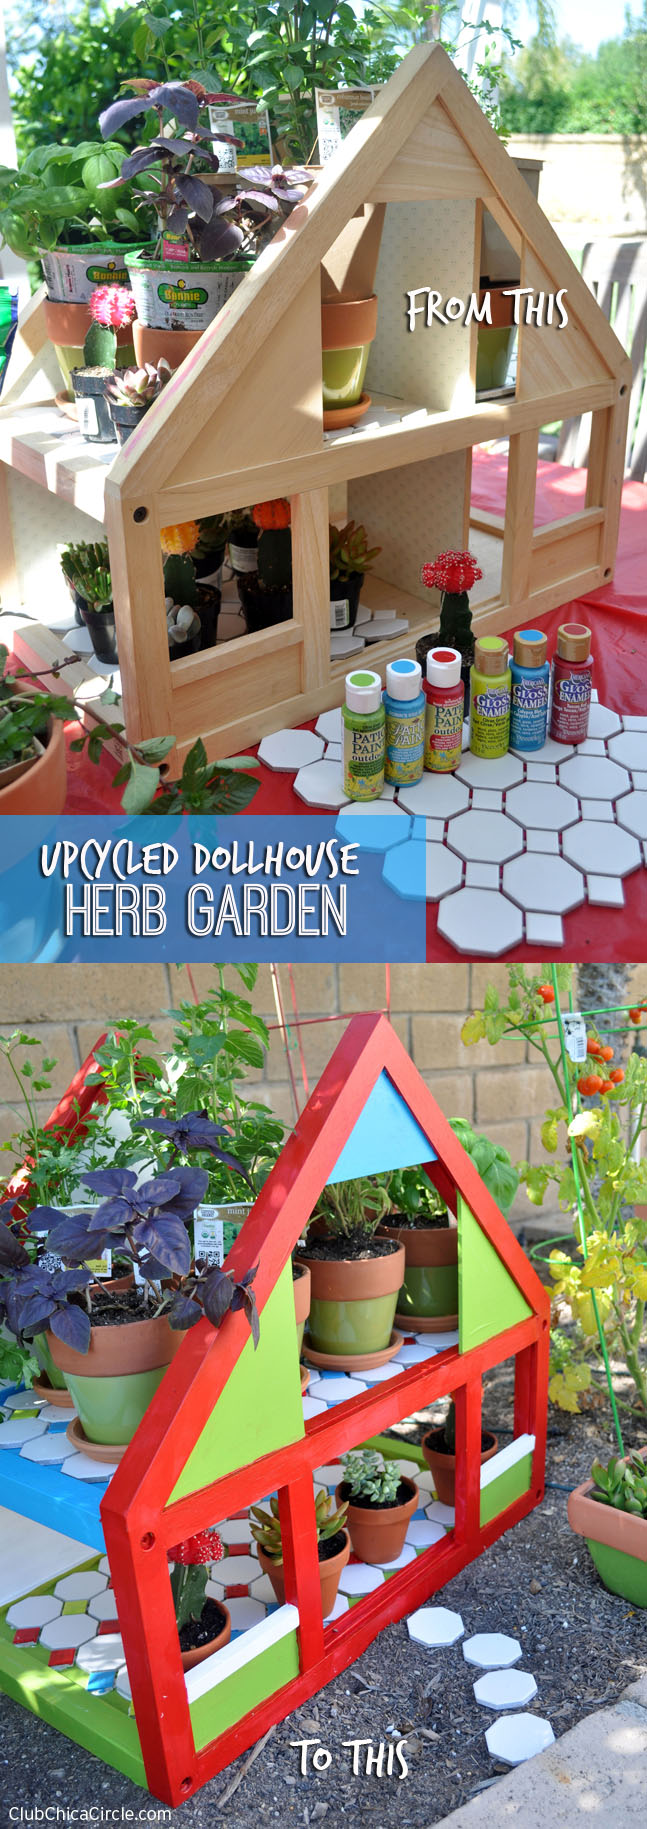 Upcycled Dollhouse Herb Garden DIY